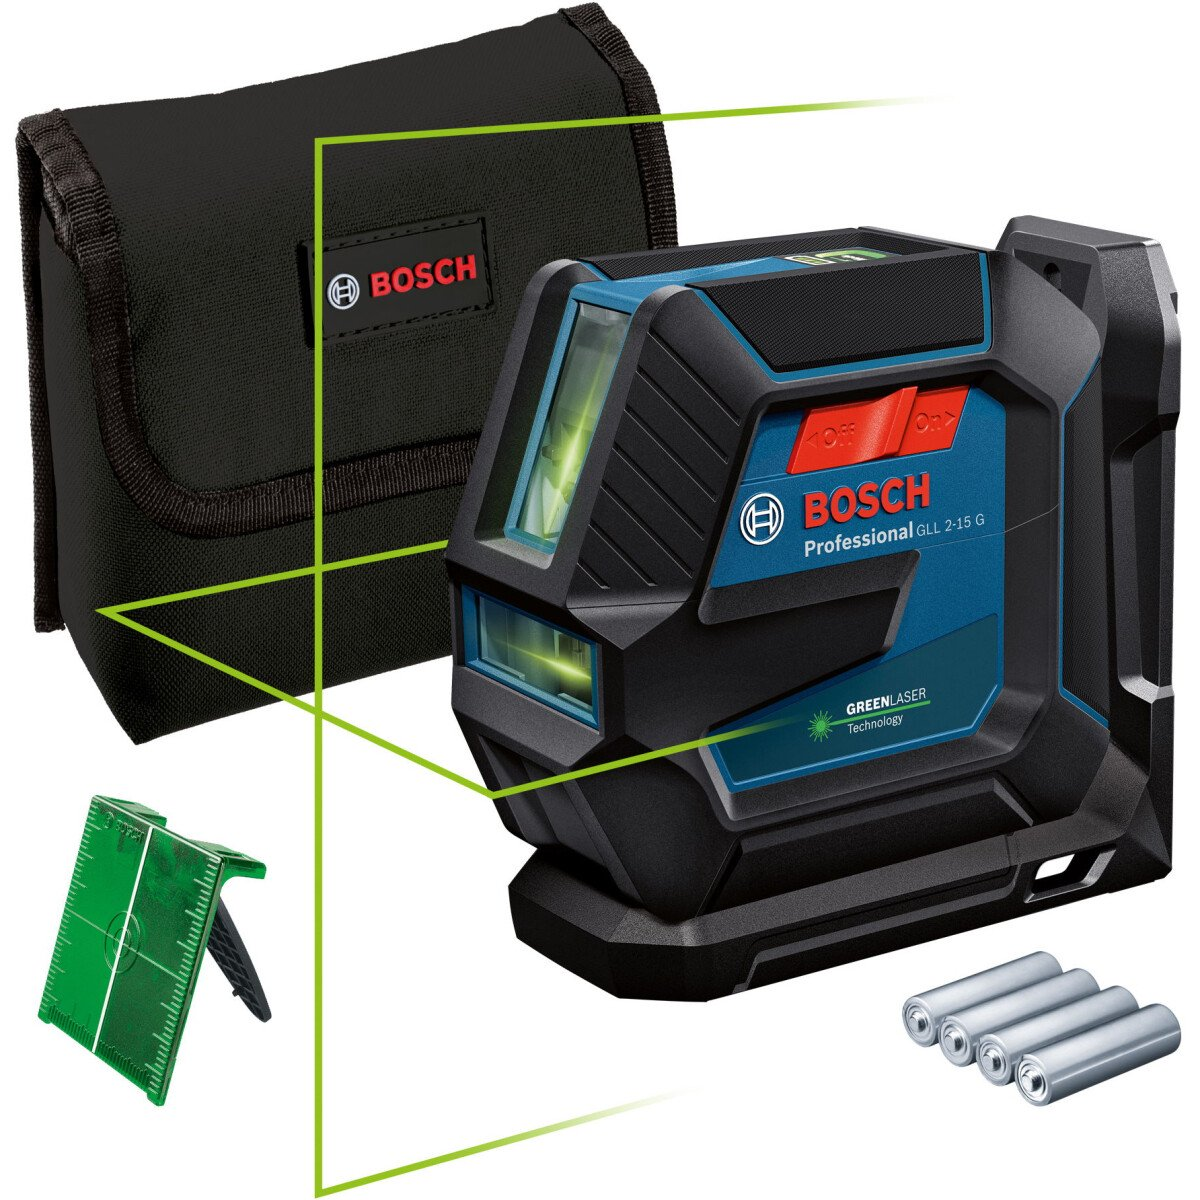 Bosch GLL 2-15 G + LB 10 Greem Beam Line Laser 15m With Target Plate and Pouch